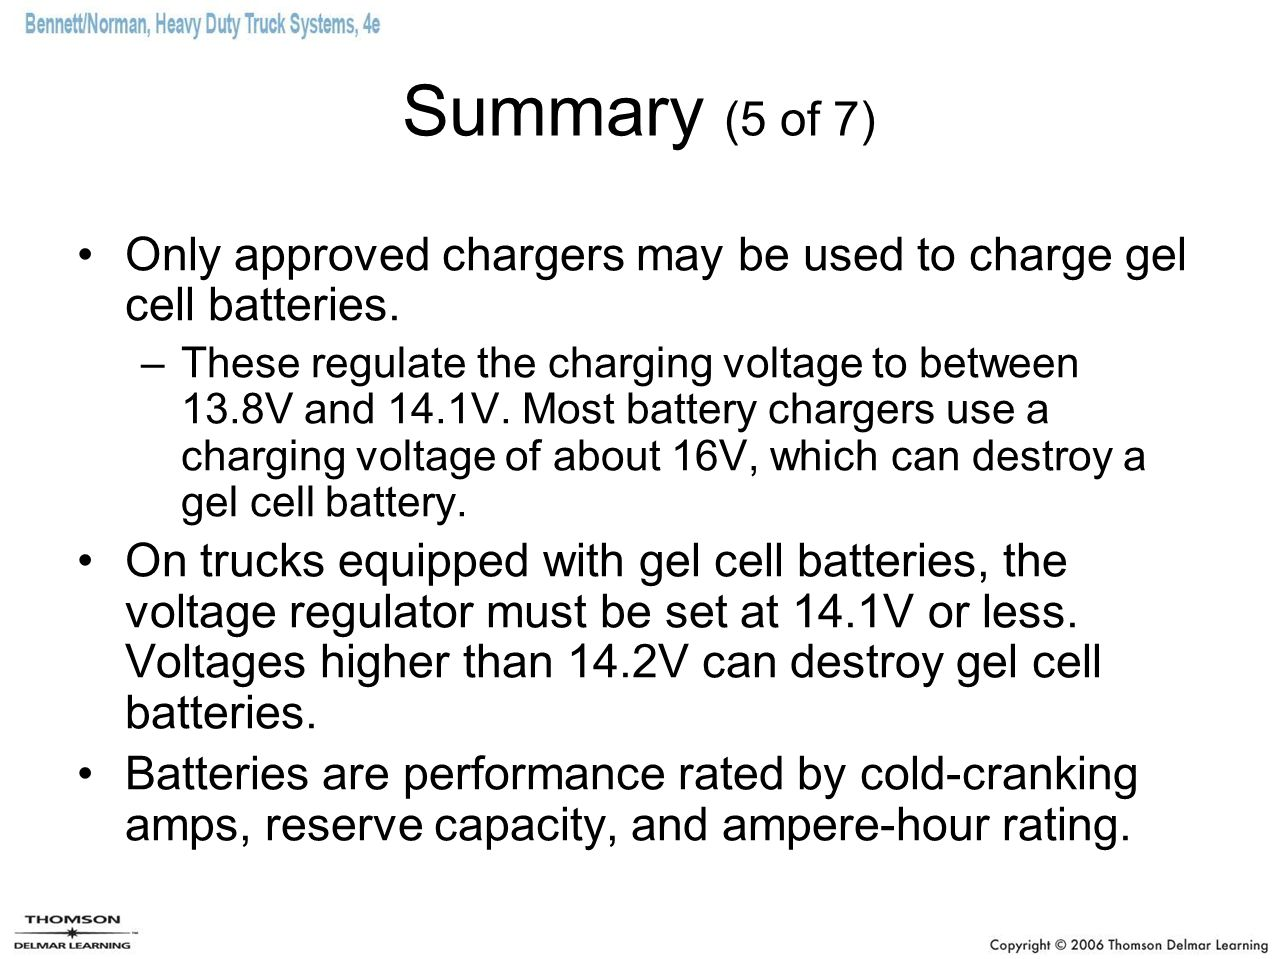 Summary (5 of 7) Only approved chargers may be used to charge gel cell batteries.